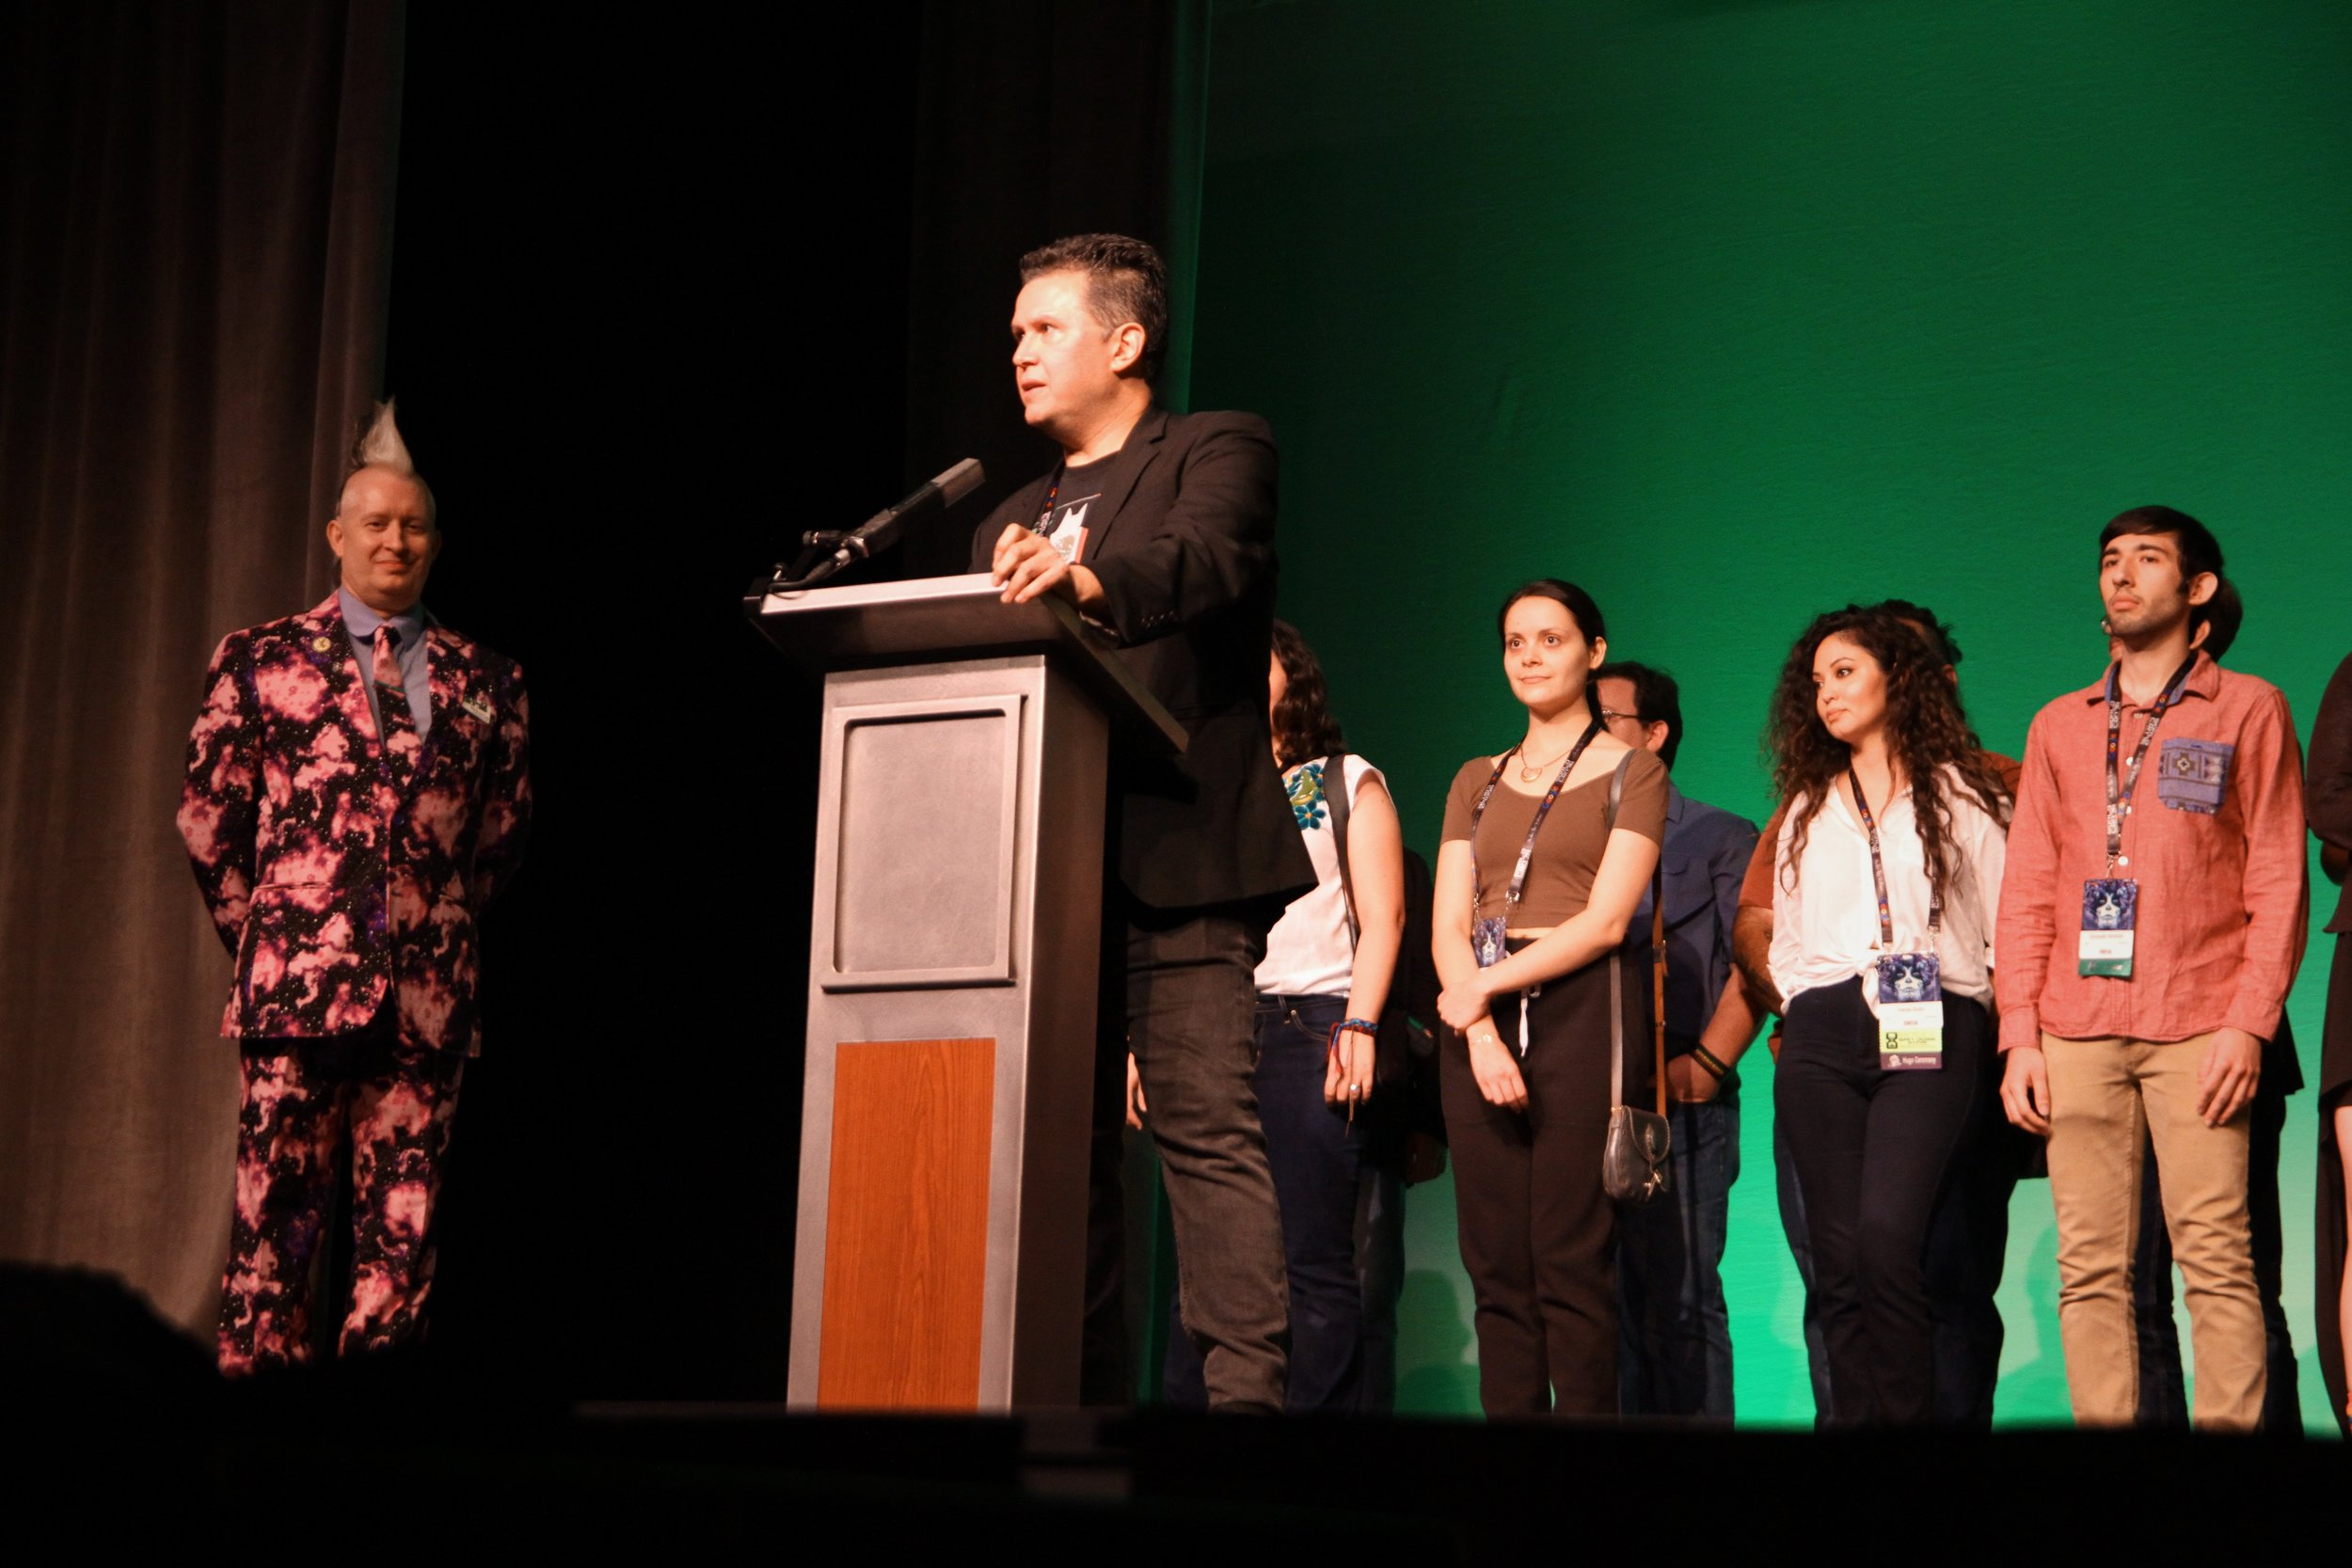 John Picacio speaking at the opening ceremonies of WorldCon 76 (Copyright 2018 Richard Canfield